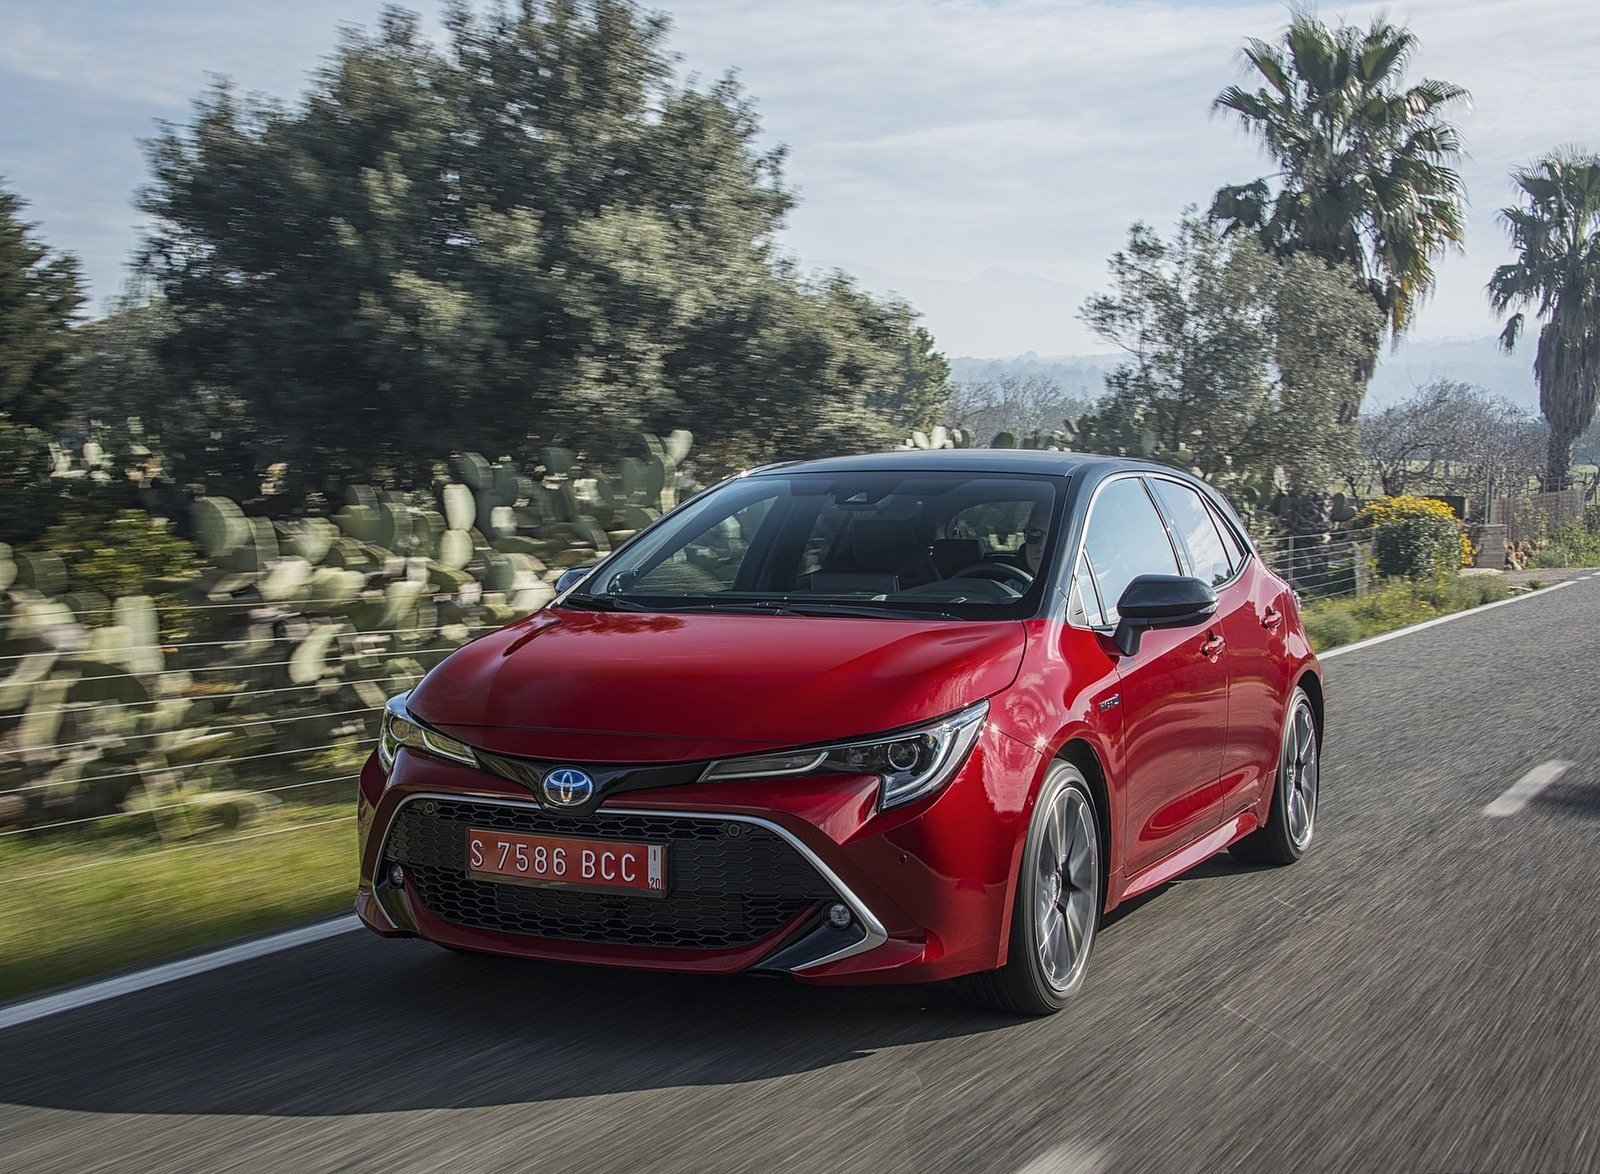 2019 Toyota Corolla Hatchback Hybrid 2.0L Red bitone (EU-Spec) Front Three-Quarter Wallpapers (8)